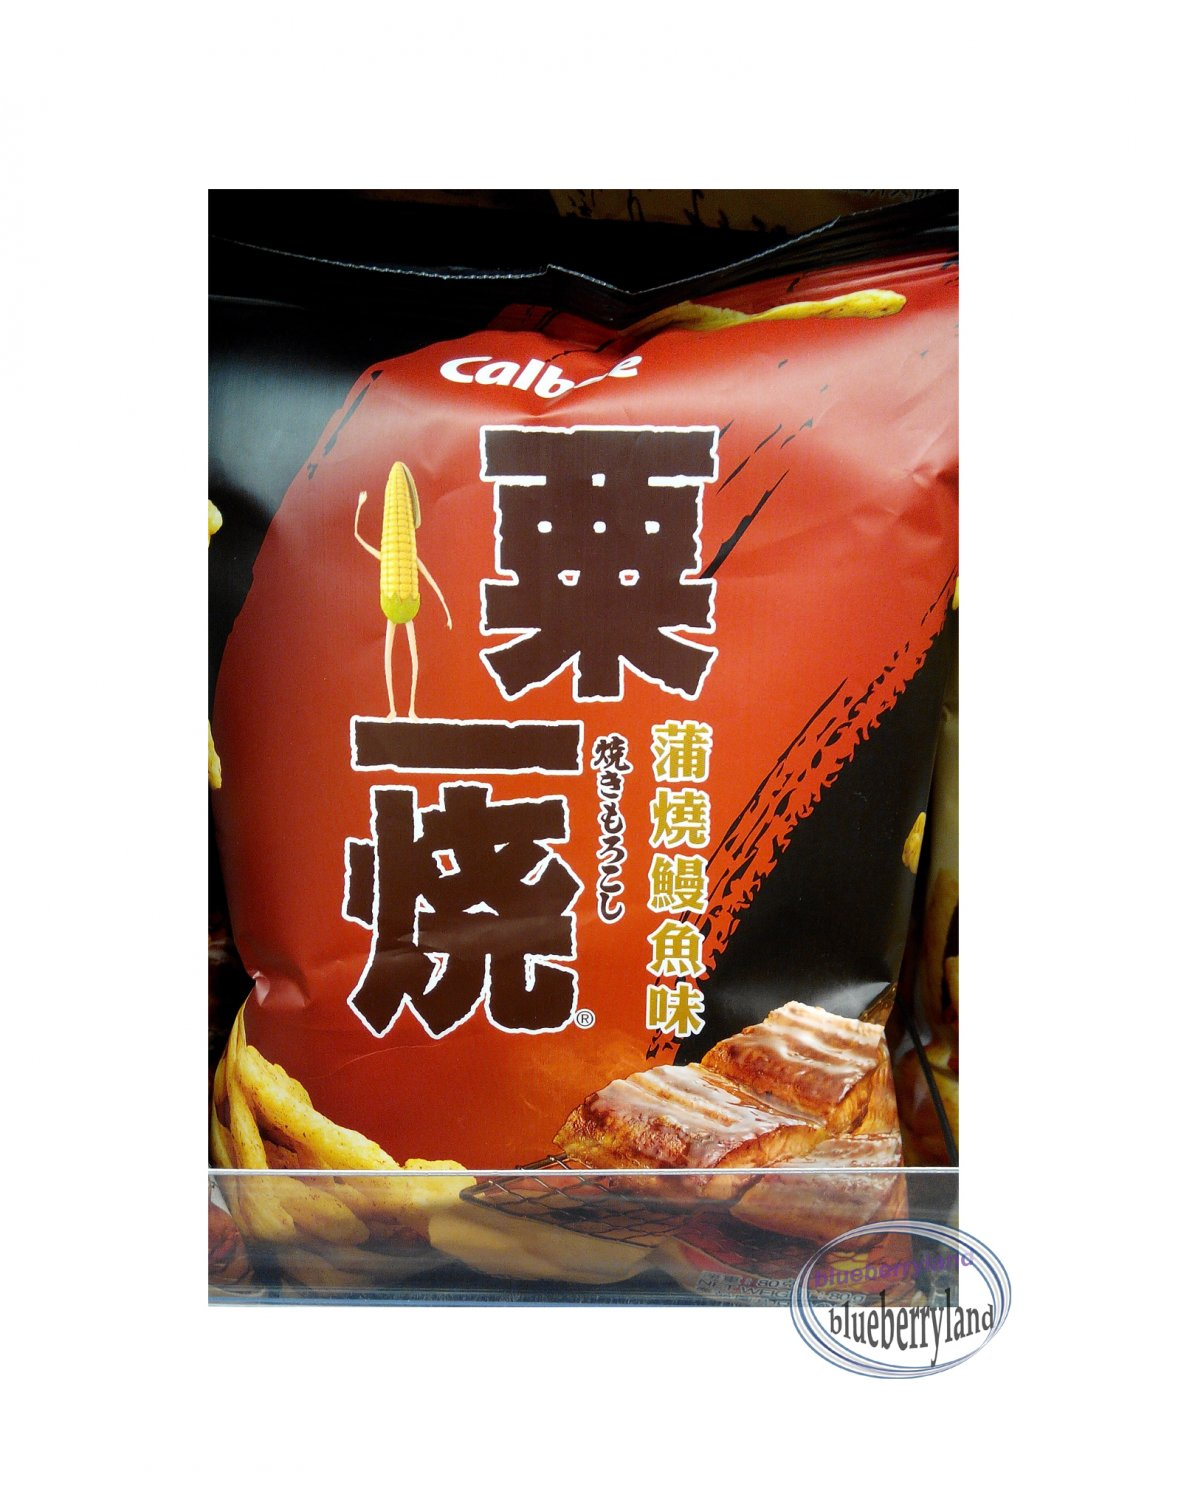 Calbee EEL Flavoured Grill-A-Corn Corn Sticks Snacks TV movie games Snack 2 Bags